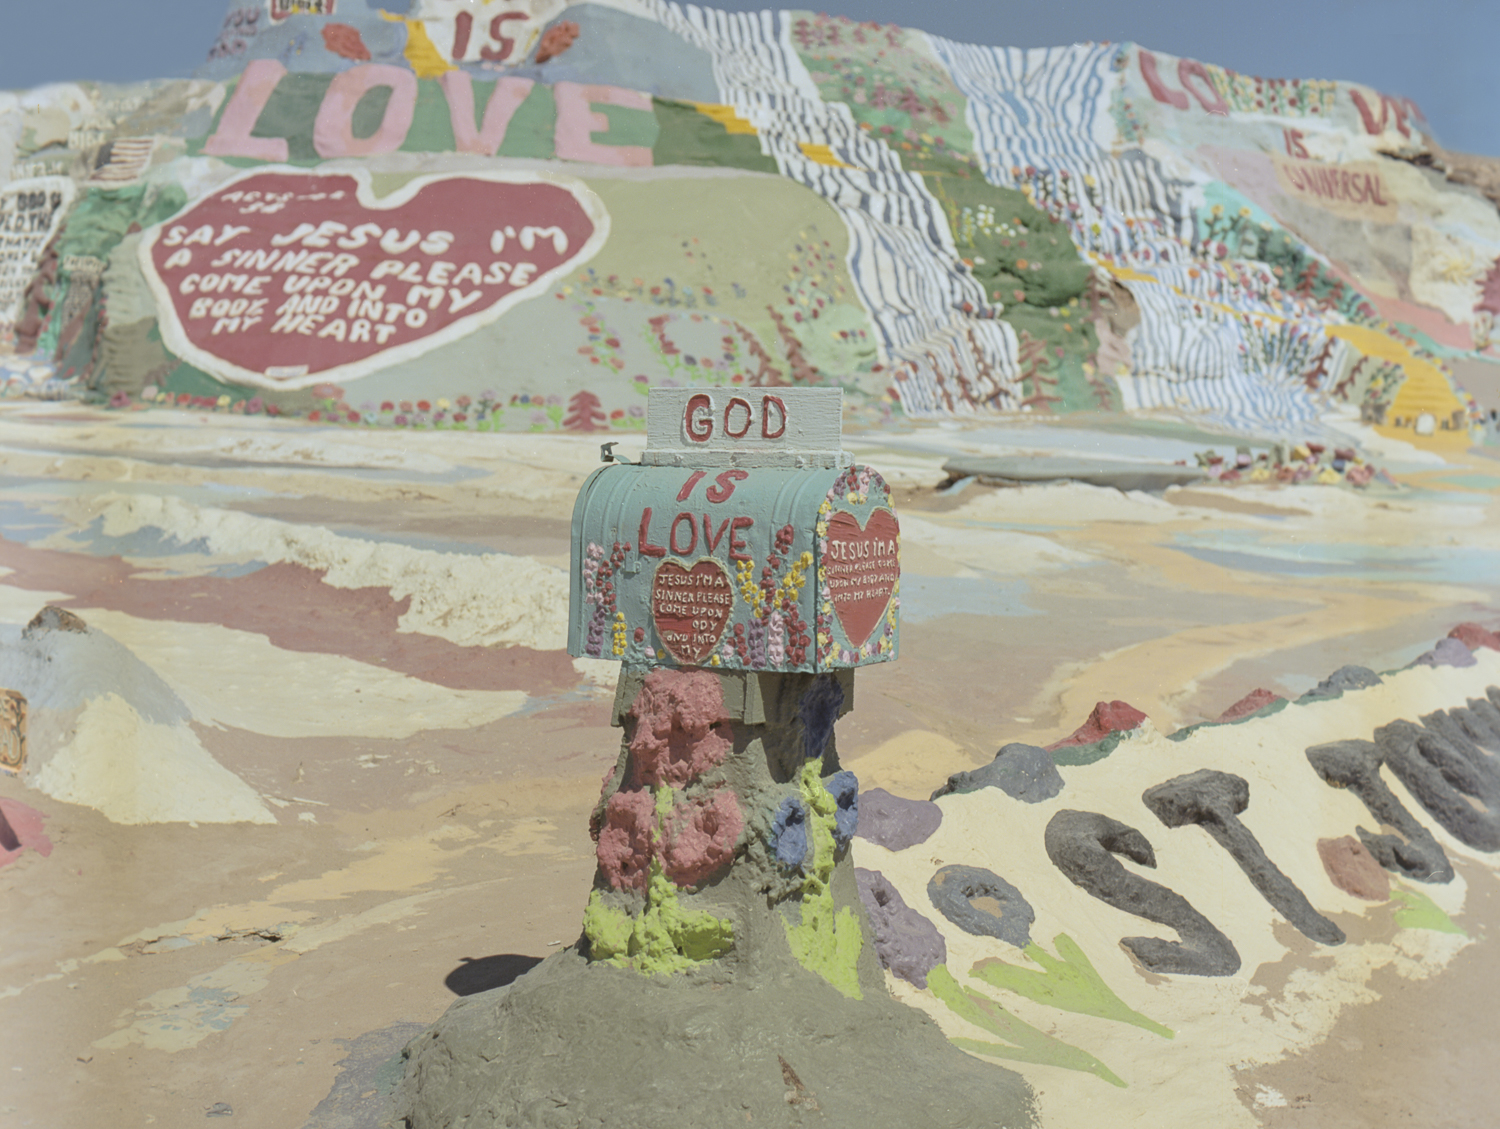 28 Aug 2016, Salvation Mountain, Niland, CA. Pentax 645, Ektar 100 @ 400, Developed (Unicolor) and Scanned by me.